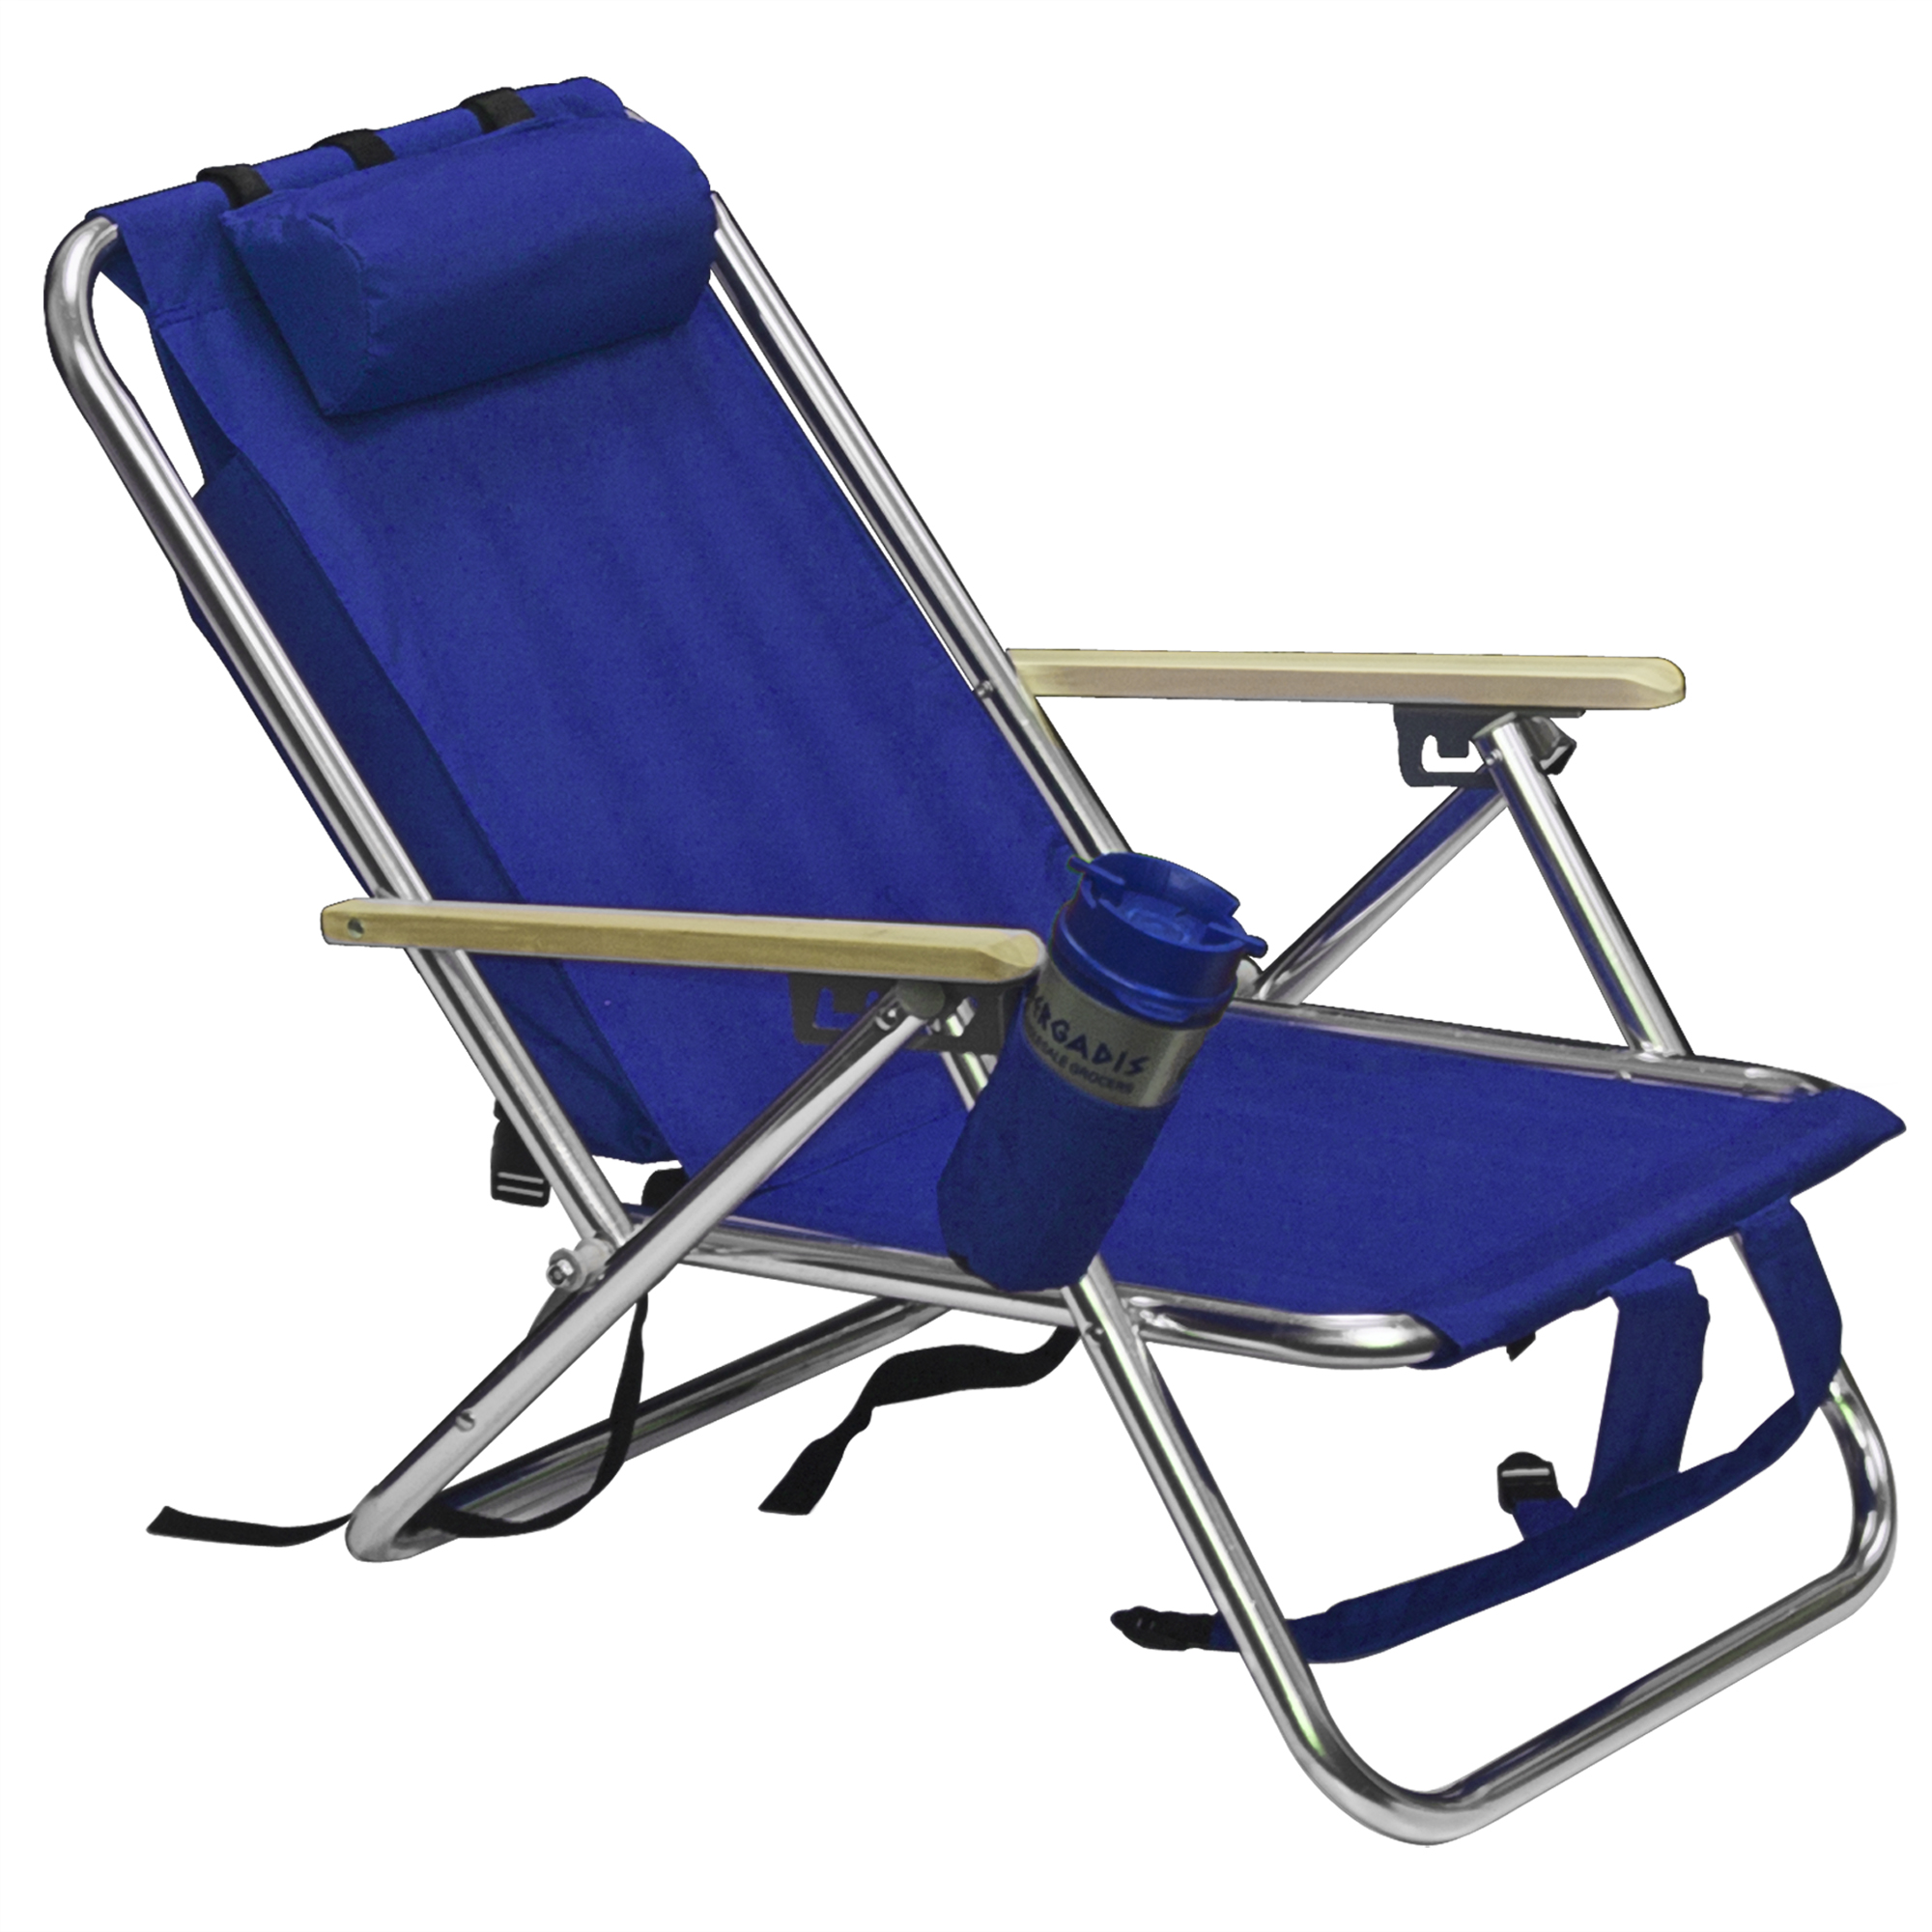 Best Choice Products Backpack Beach Chair Folding Portable Chair Solid Construction Camping New - Blue